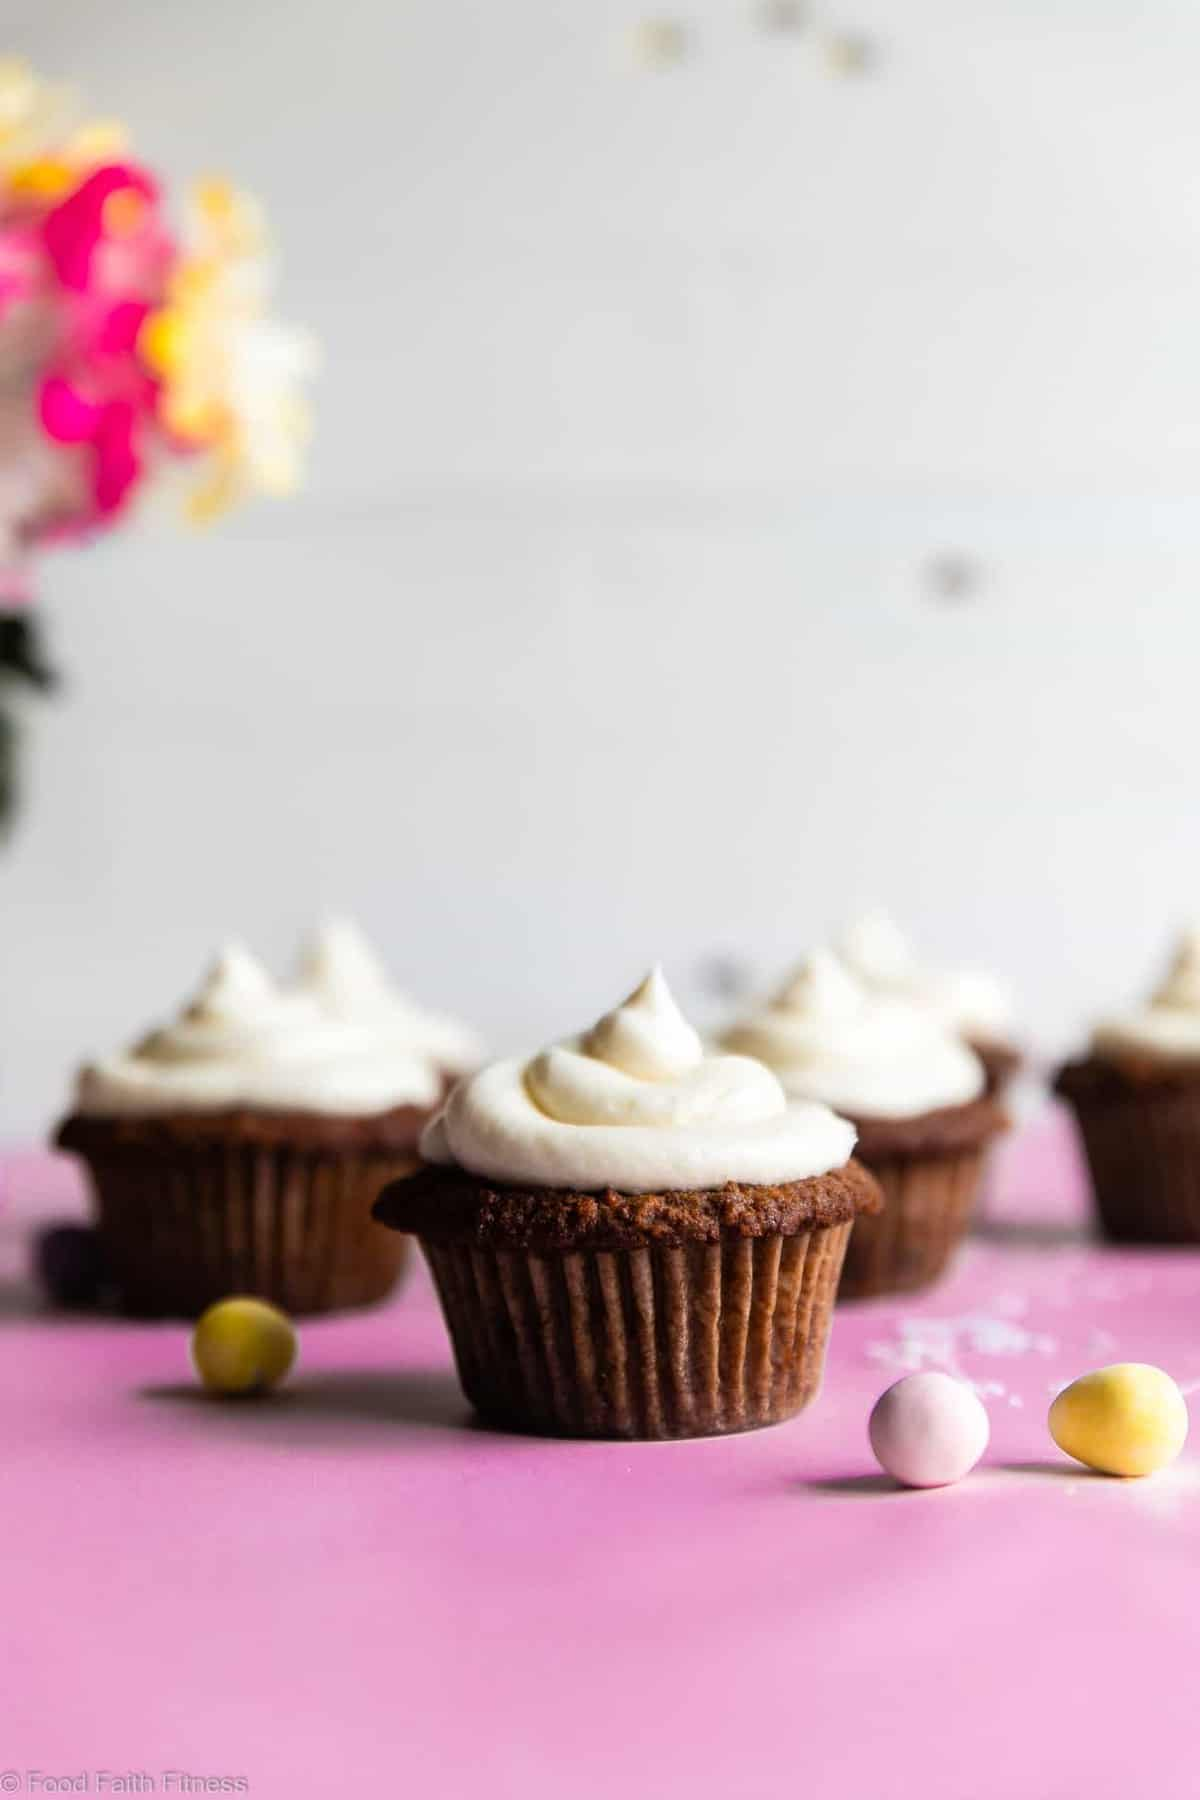 Gluten Free Carrot Cake Cupcakes Recipe - These Gluten Free Carrot Cake Cupcakes are tender, light, moist and perfectly spicy-sweet! No one will believe they are gluten free! Dairy free option included! | #Foodfaithfitness |